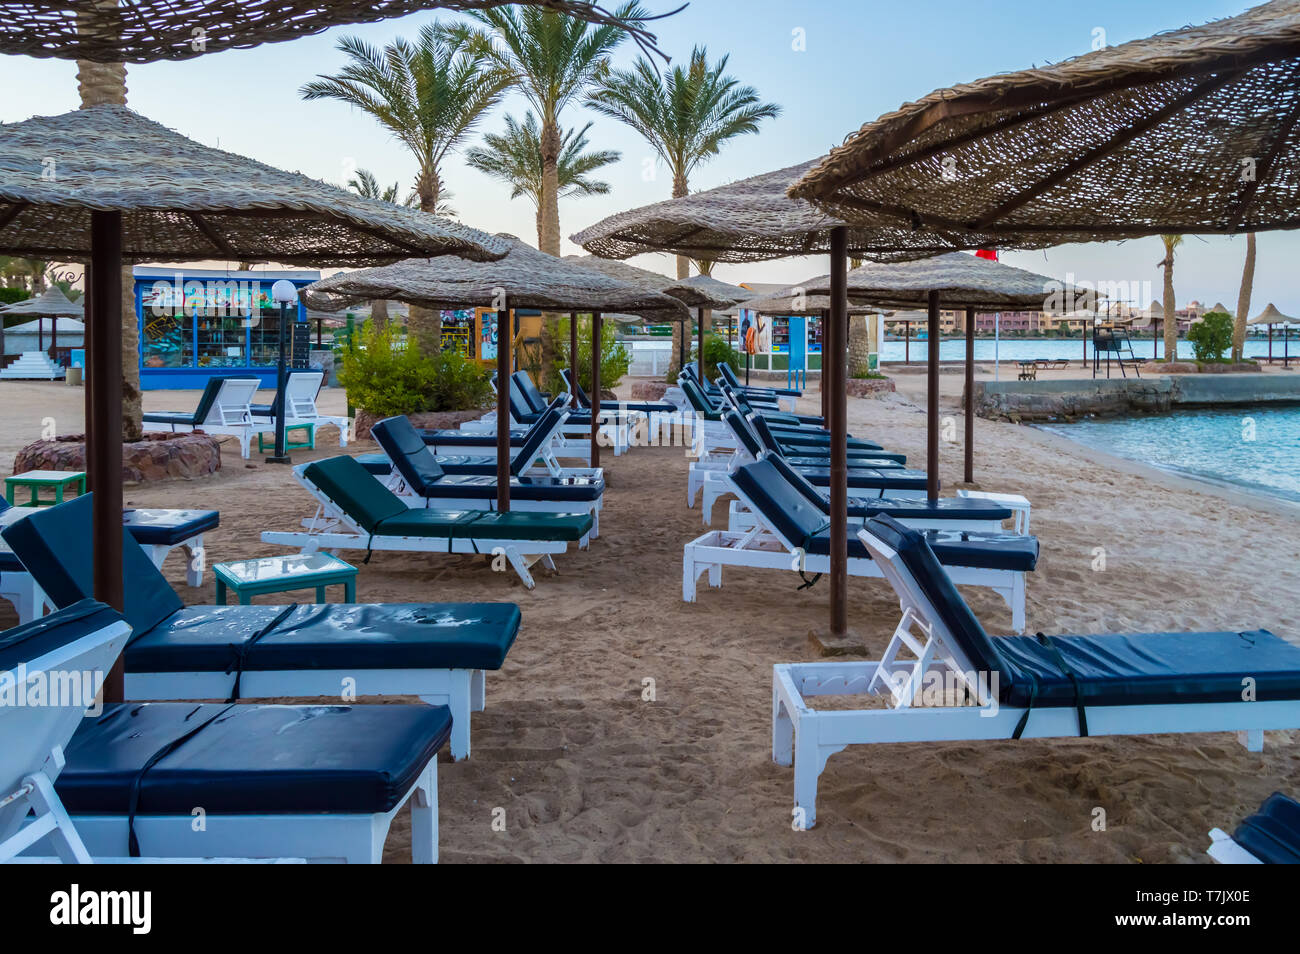 Rows Of Sunbeds And Umbrellas On A Beach In The City Of